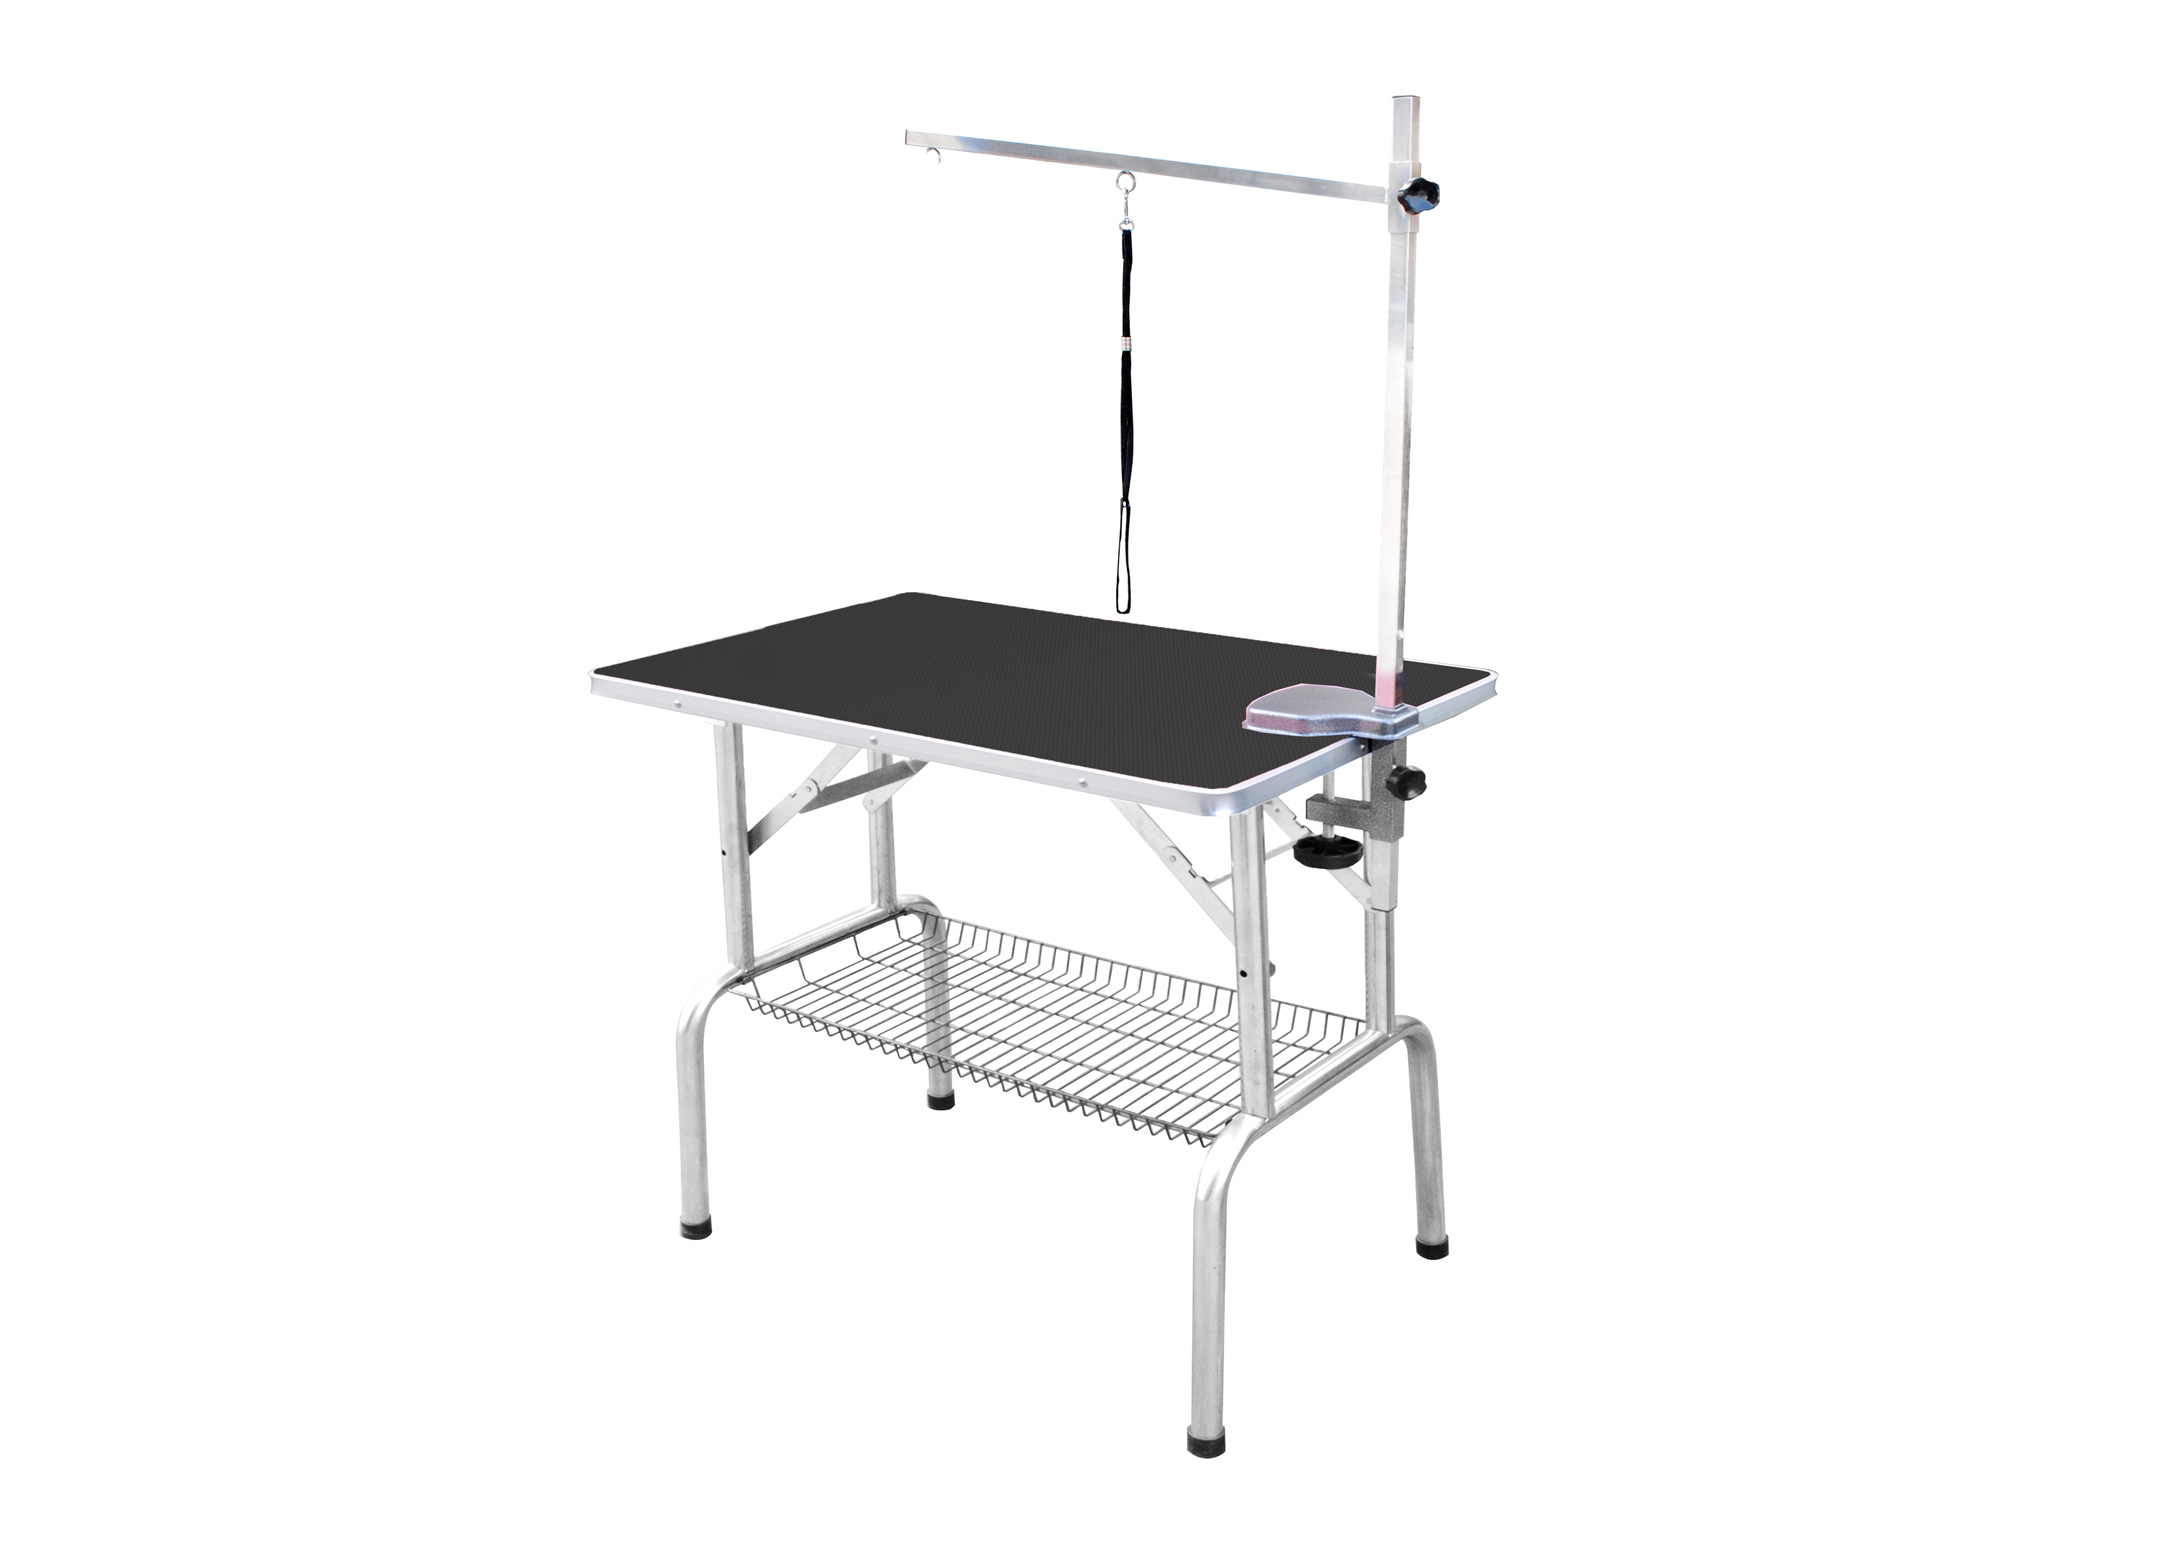 SS Grooming Table 81x52x78cmH Show Table For Groomers